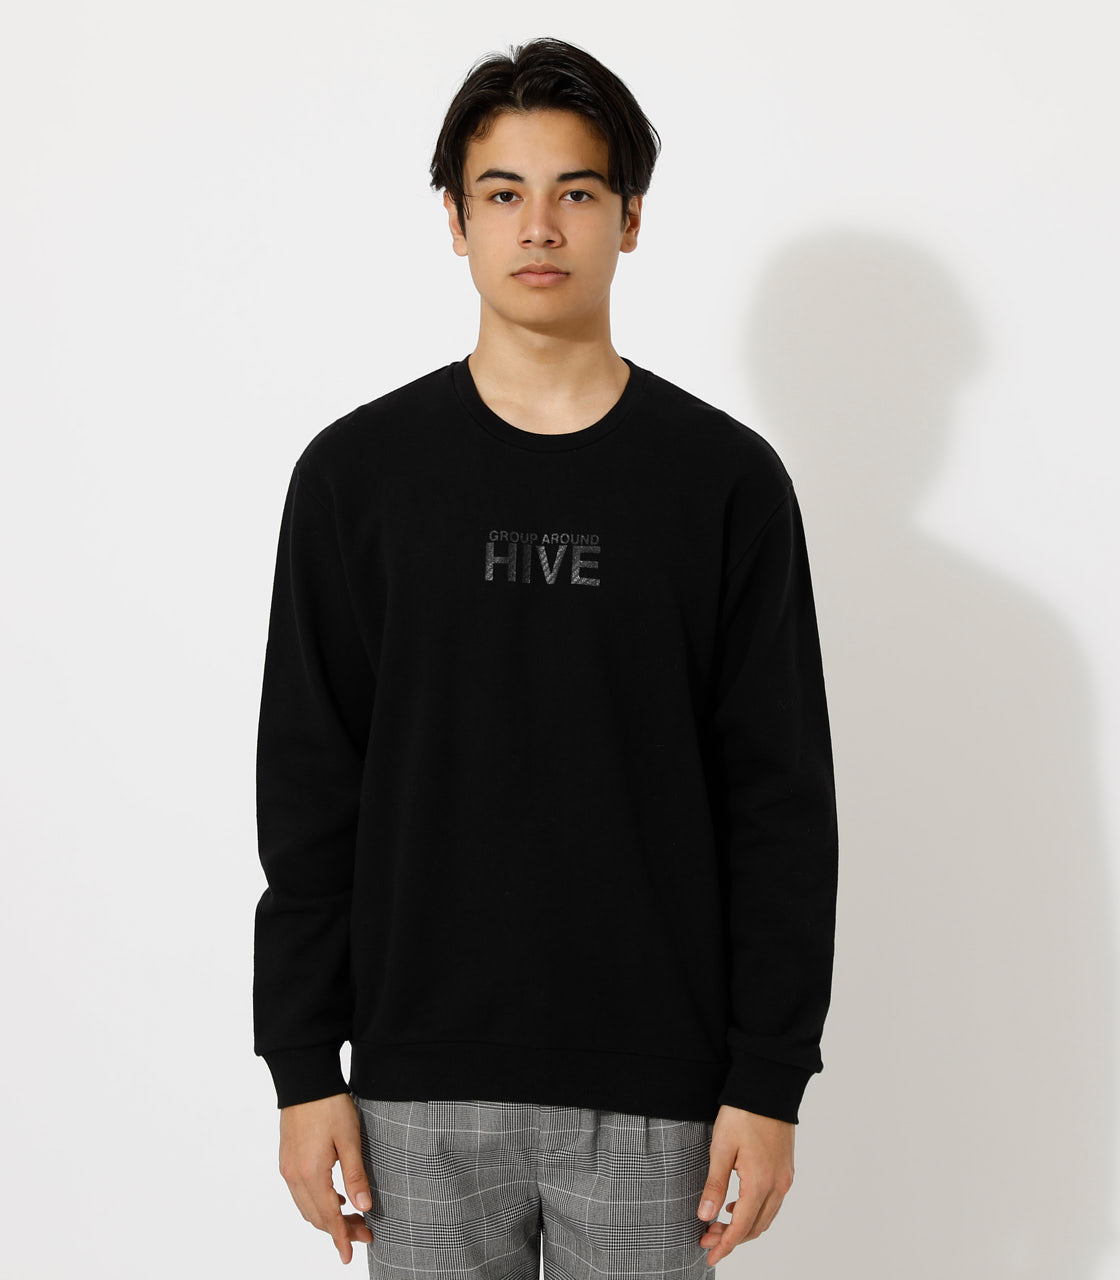 SYNC/HIVE PULLOVER/シンク/ハイブプルオーバー 詳細画像 BLK 4